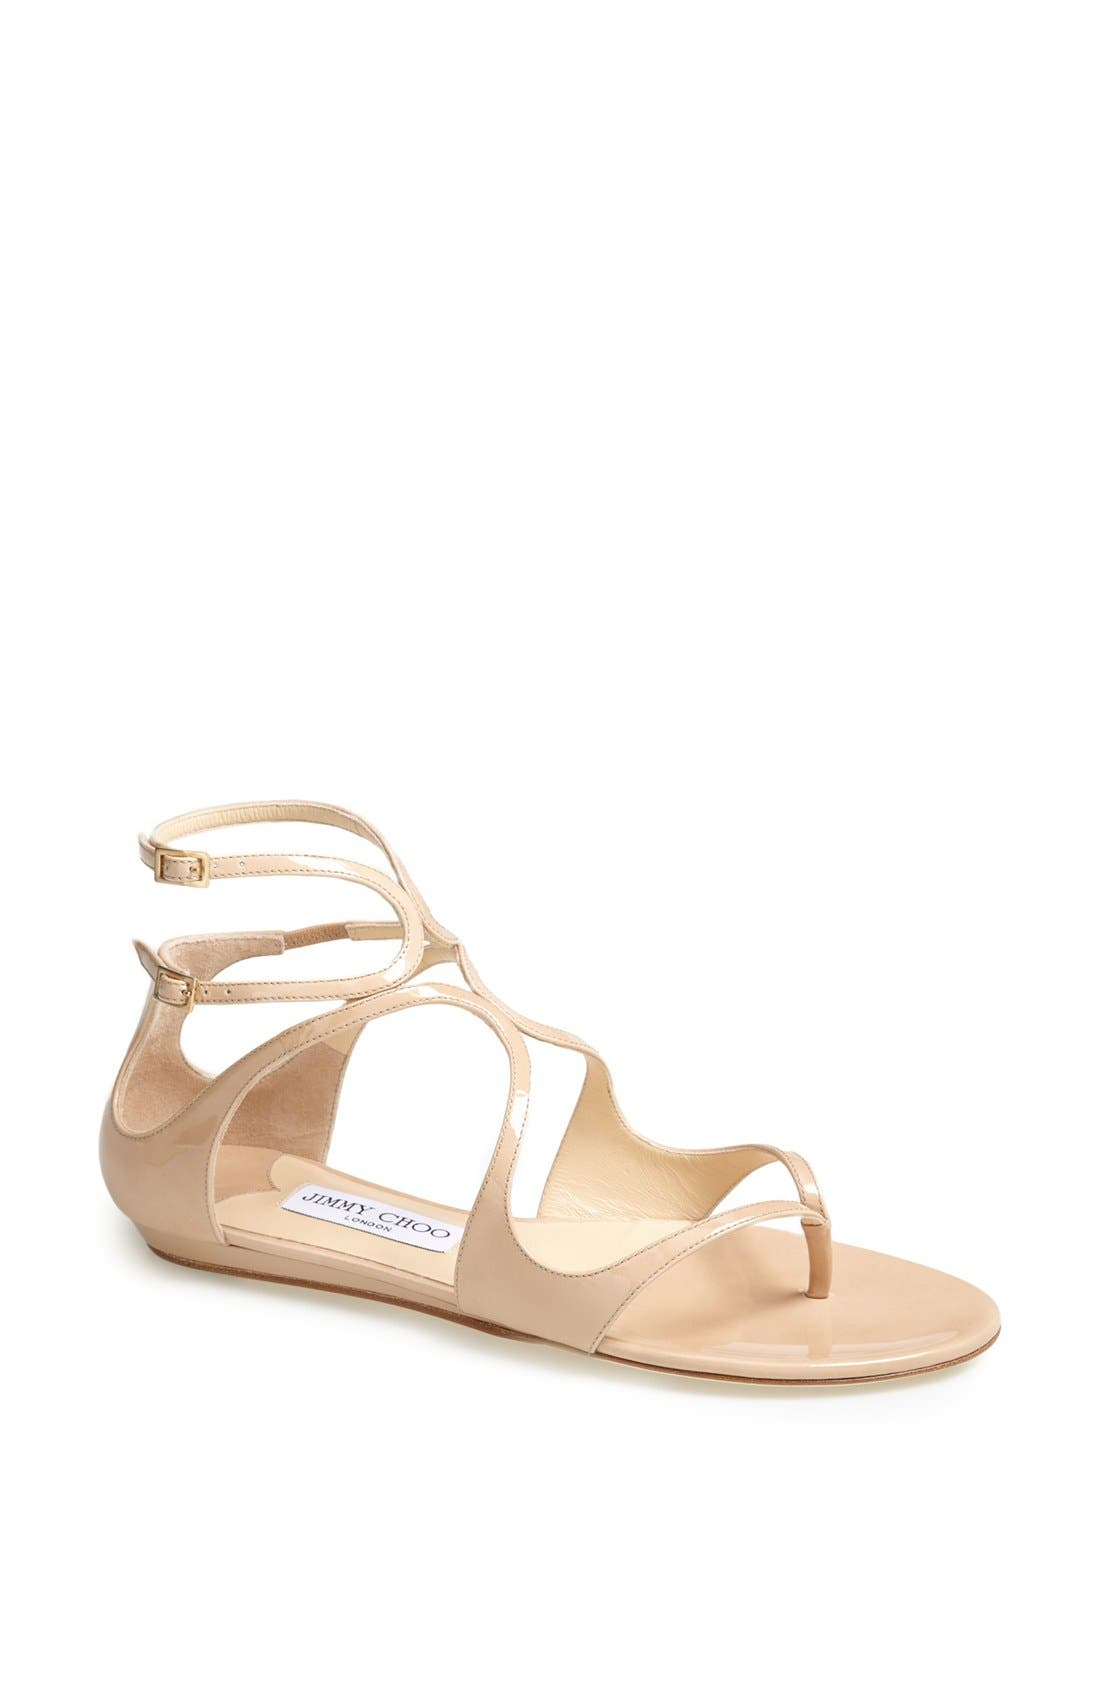 Alternate Image 1 Selected - Jimmy Choo 'Leja' Thong Sandal